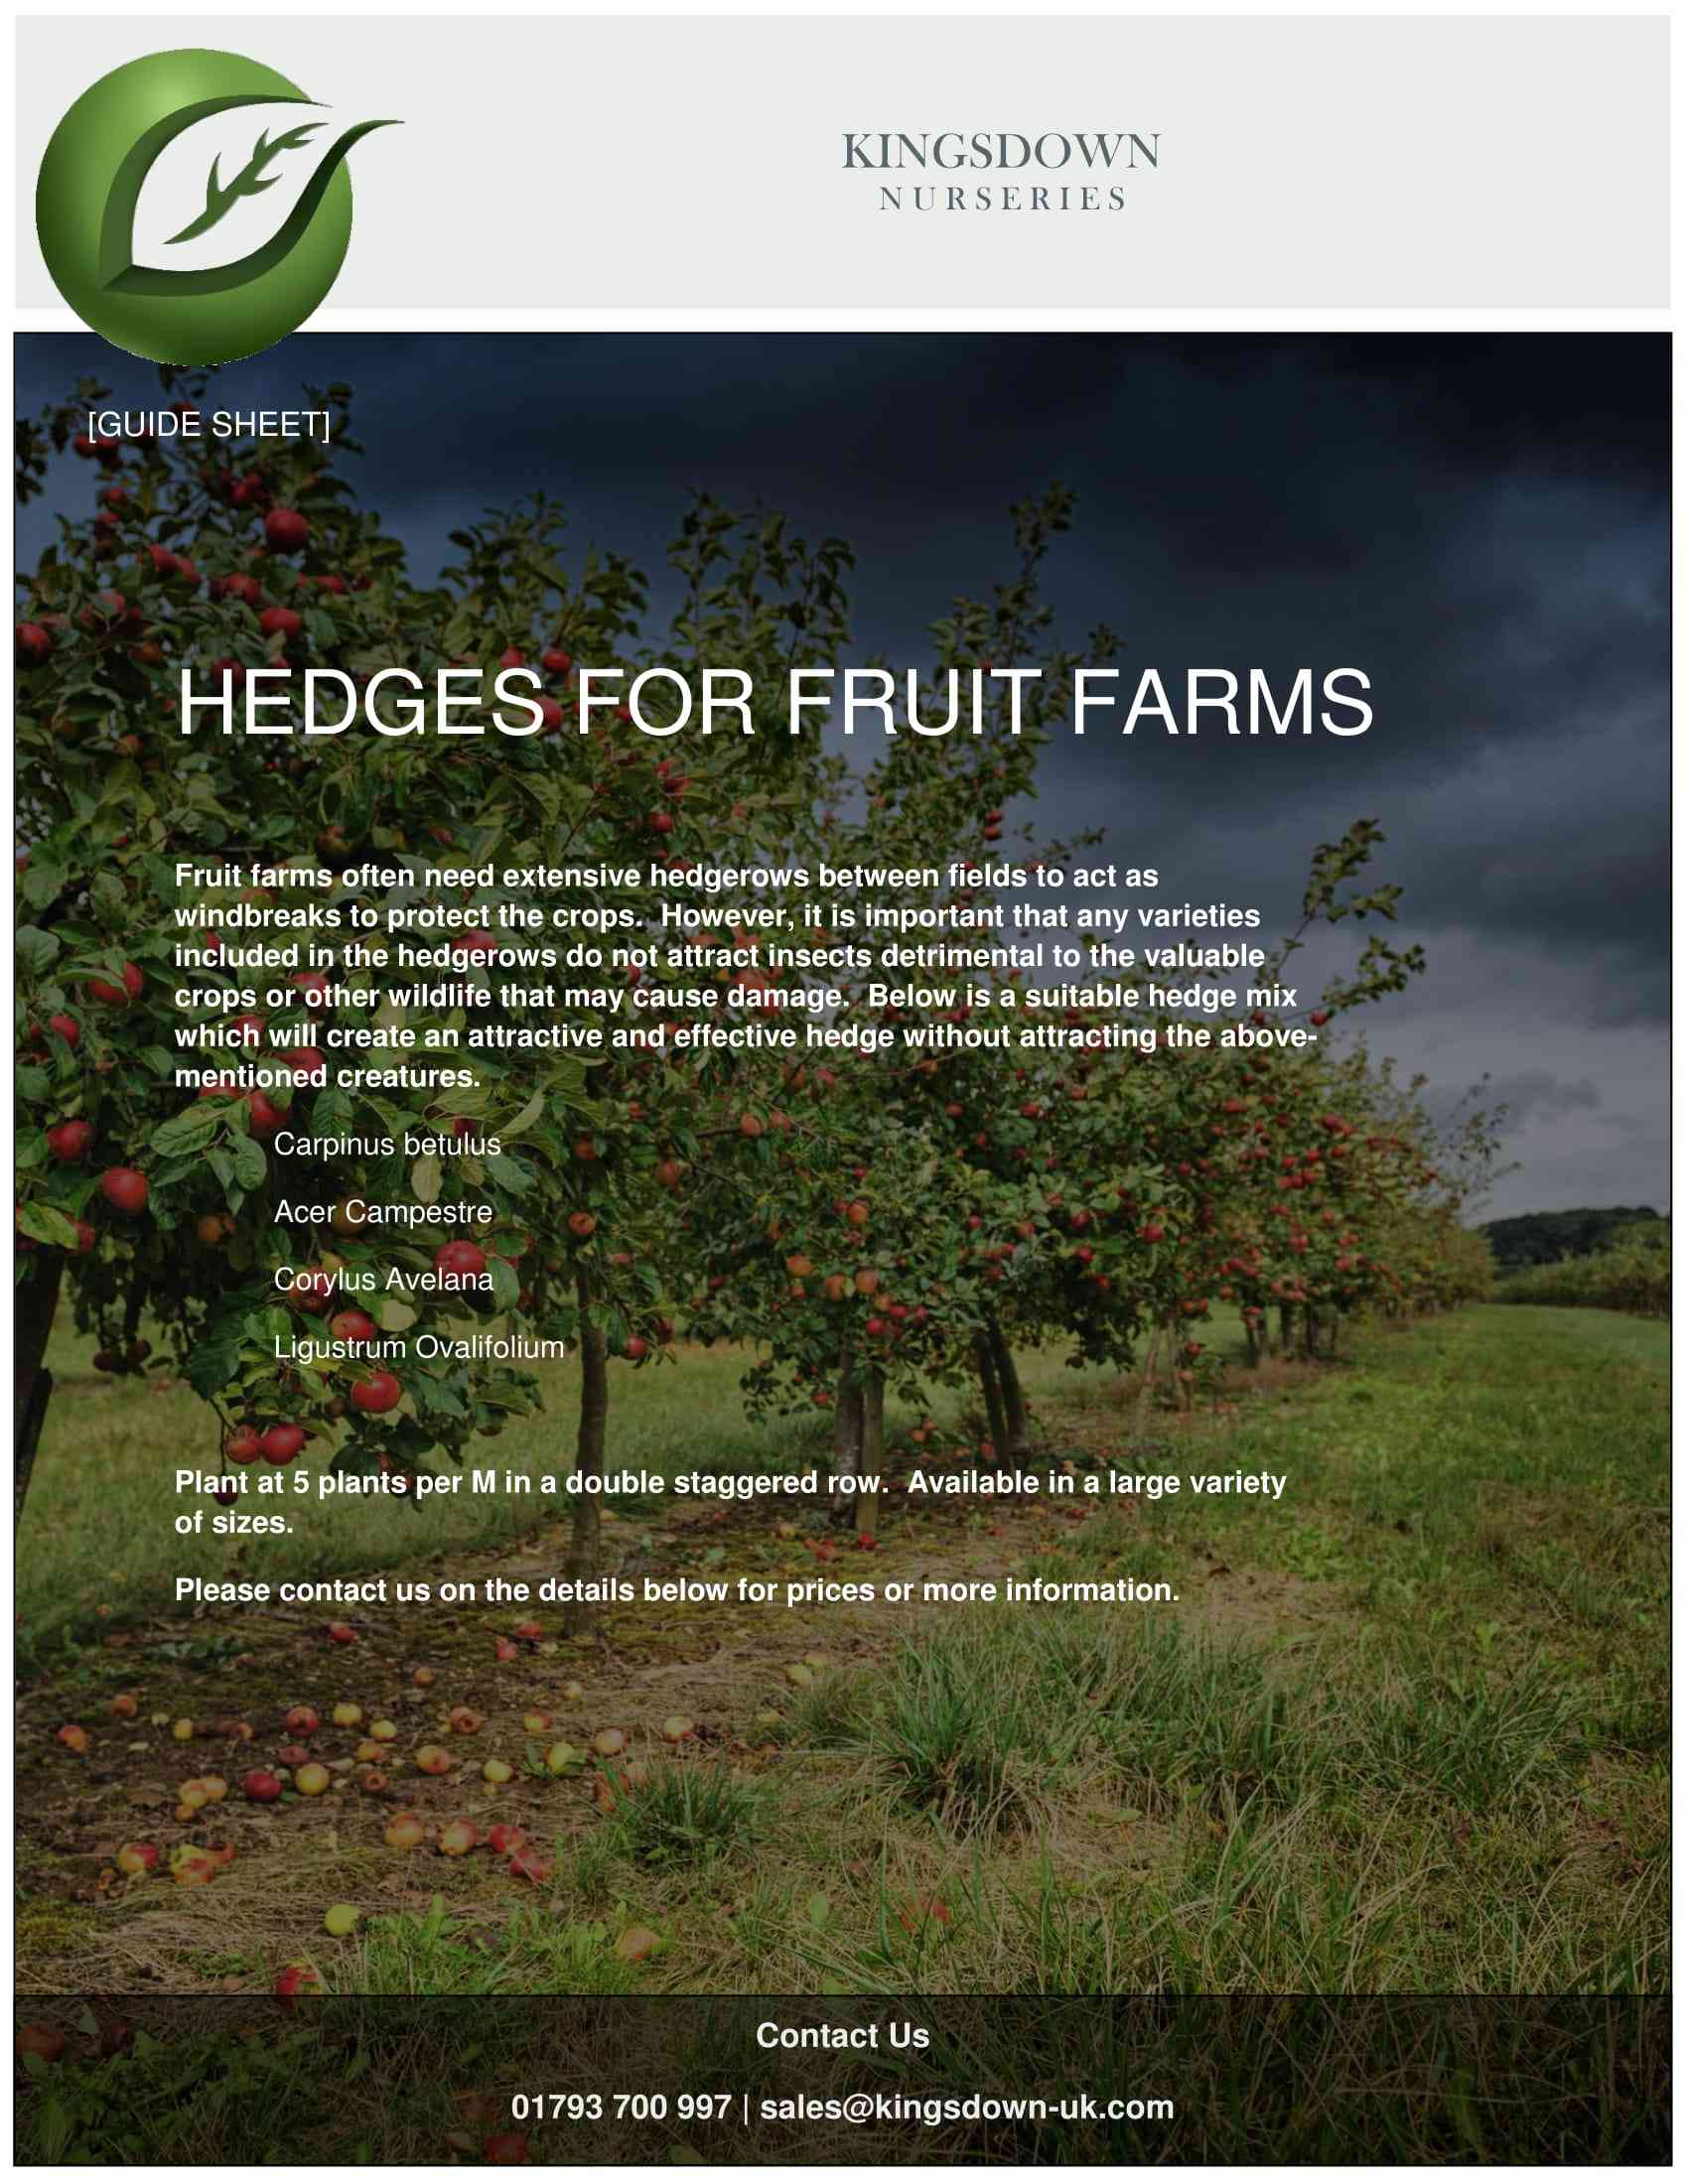 Hedges for Fruit Farms